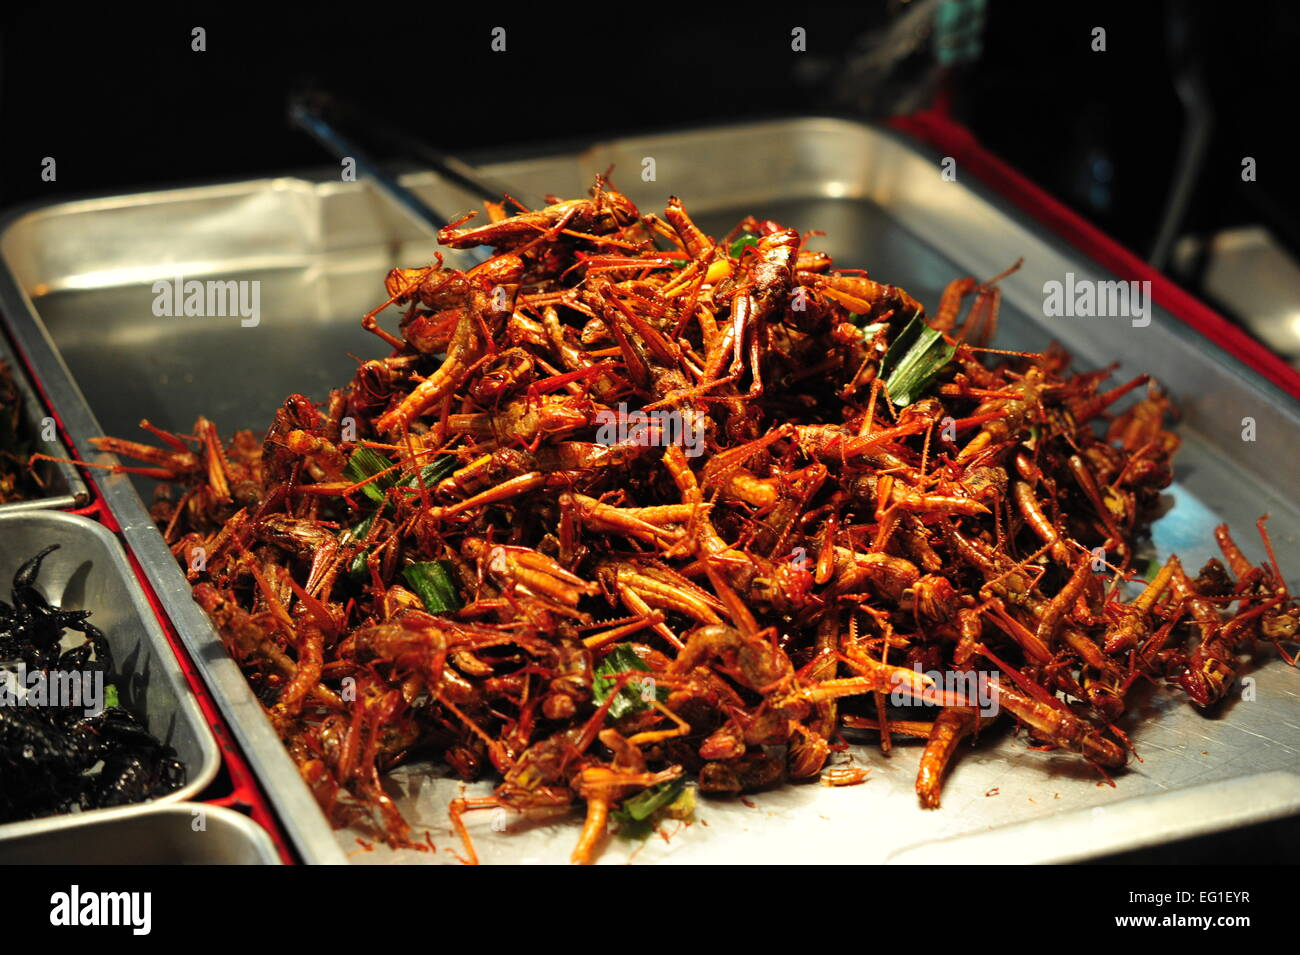 Fried Insects on a Nightmarket in Bangkok, Thailand. - Stock Image